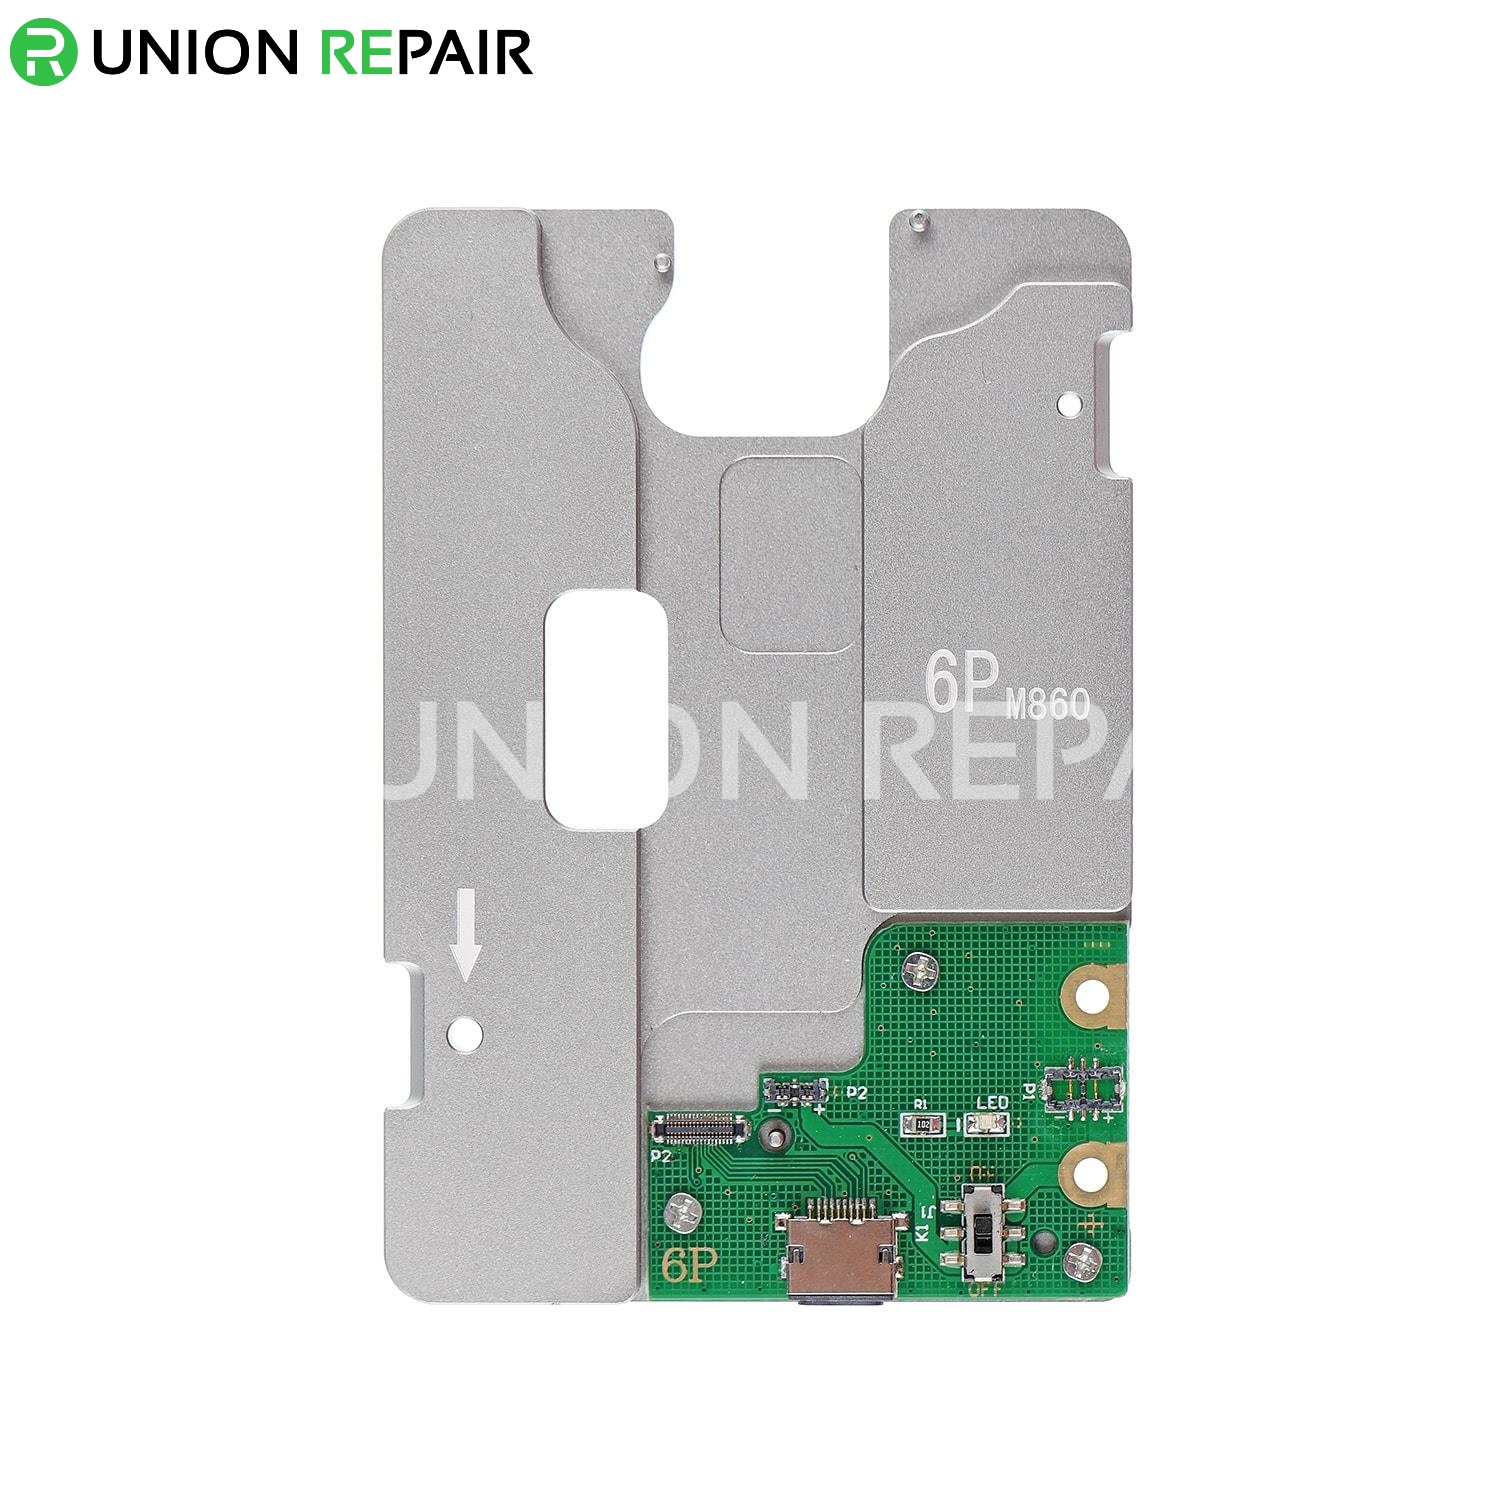 MiJing MJ-860 5 in1 HDD Memory Nand IC Test Tool for iPhone 5g/5S/6G/6P